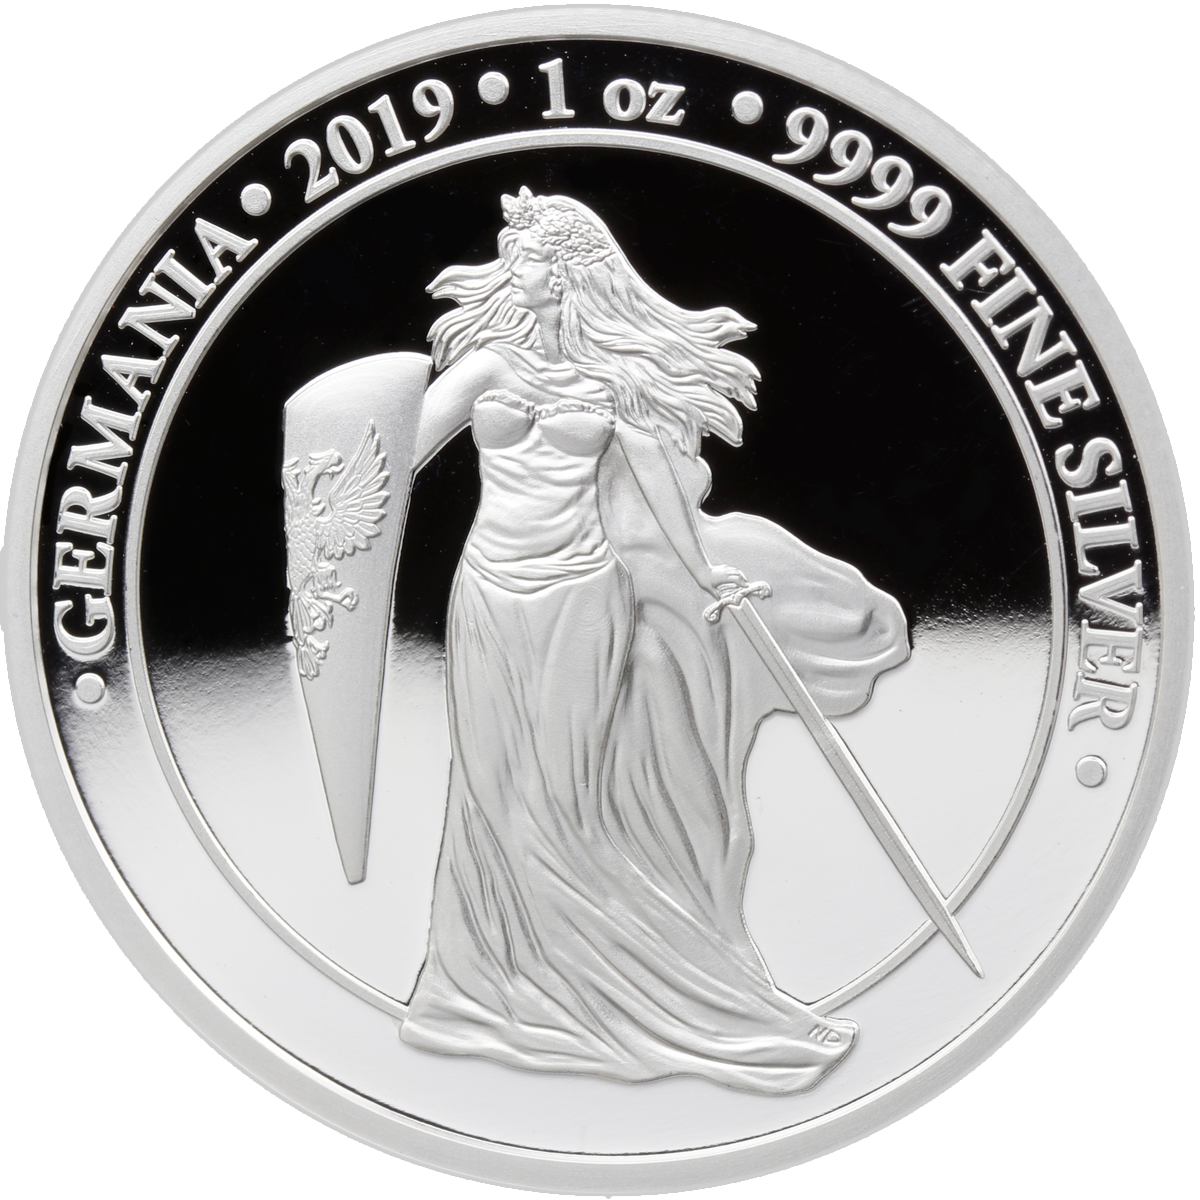 Authorized Distributor for The Germania Mint -